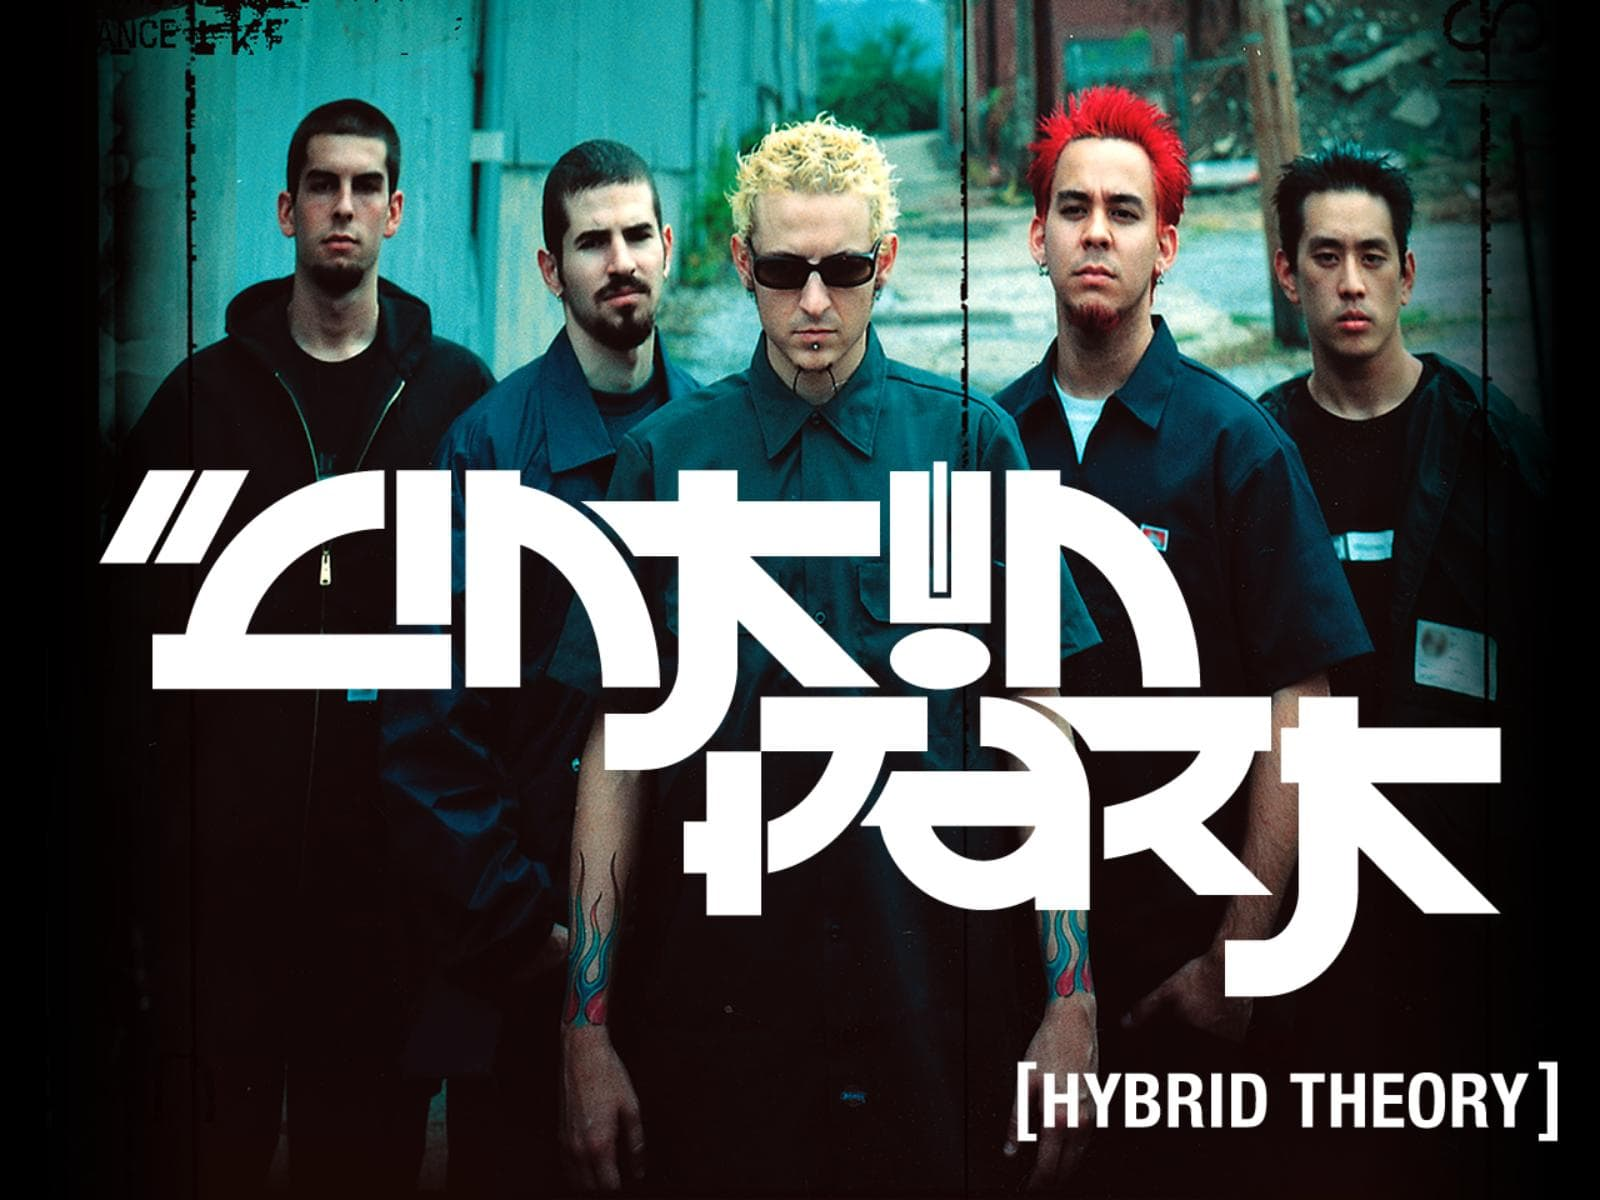 Hybrid Theory Wallpapers - Wallpaper Cave